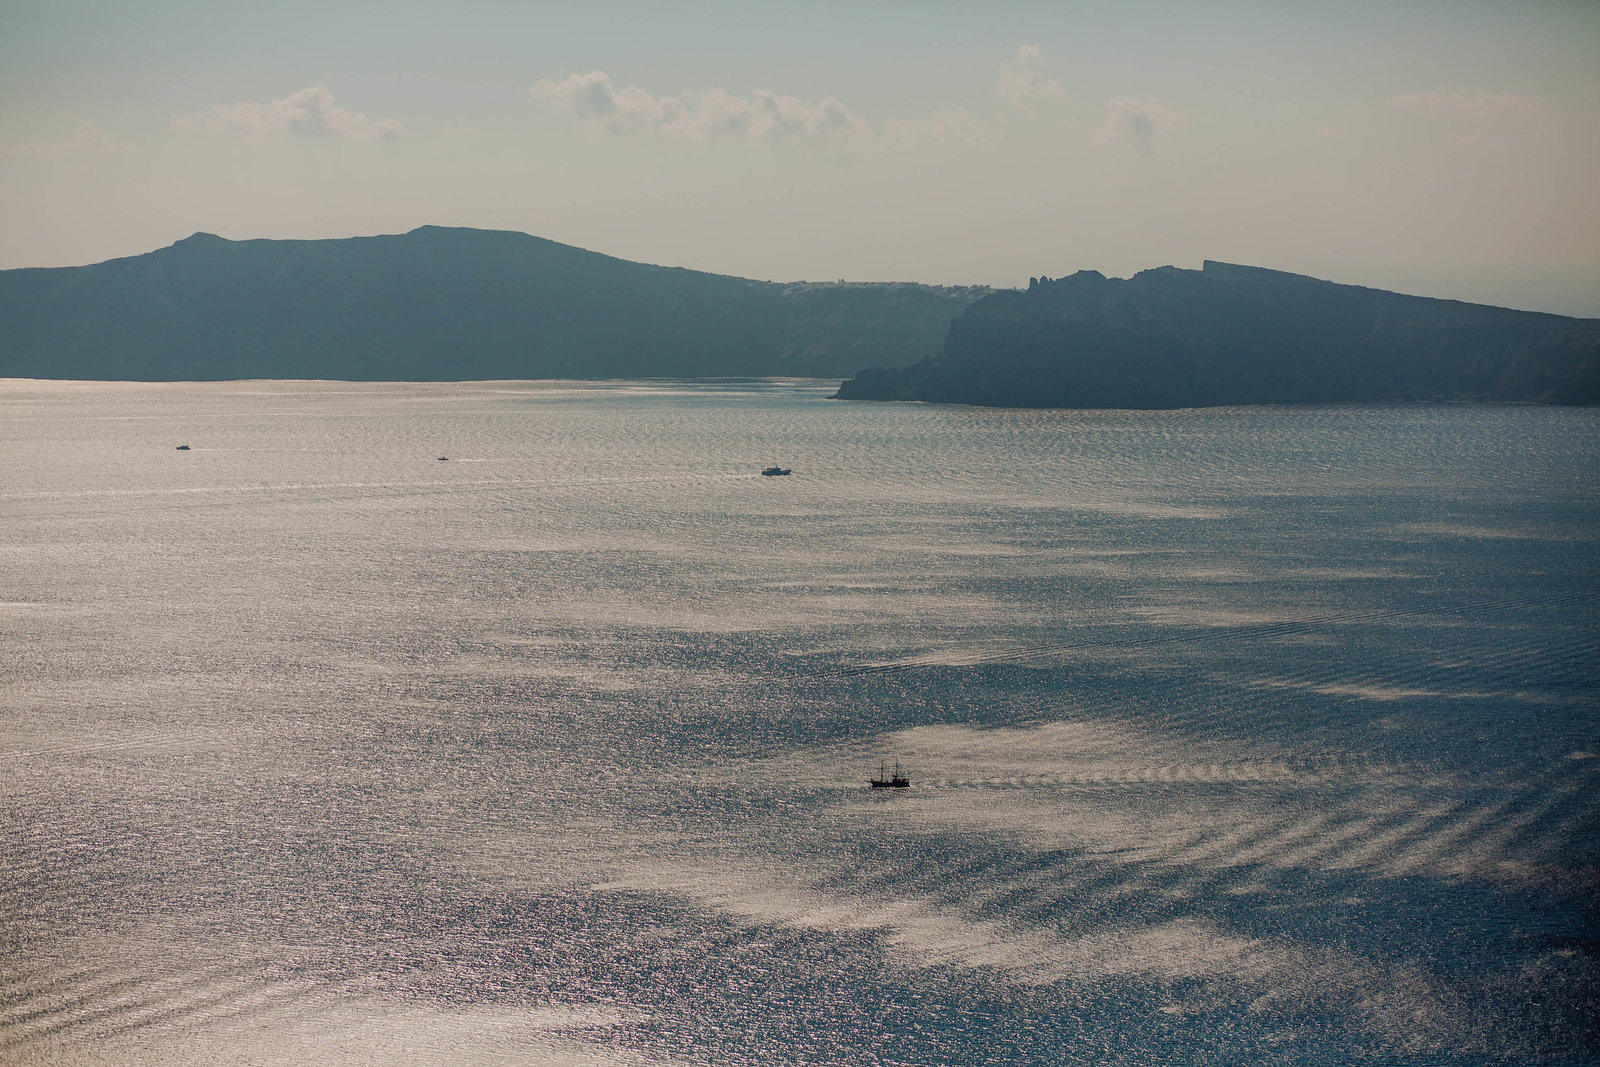 boat-water-volcano-destination-travel-santorini-wedding-kate-timbers-photo-2606